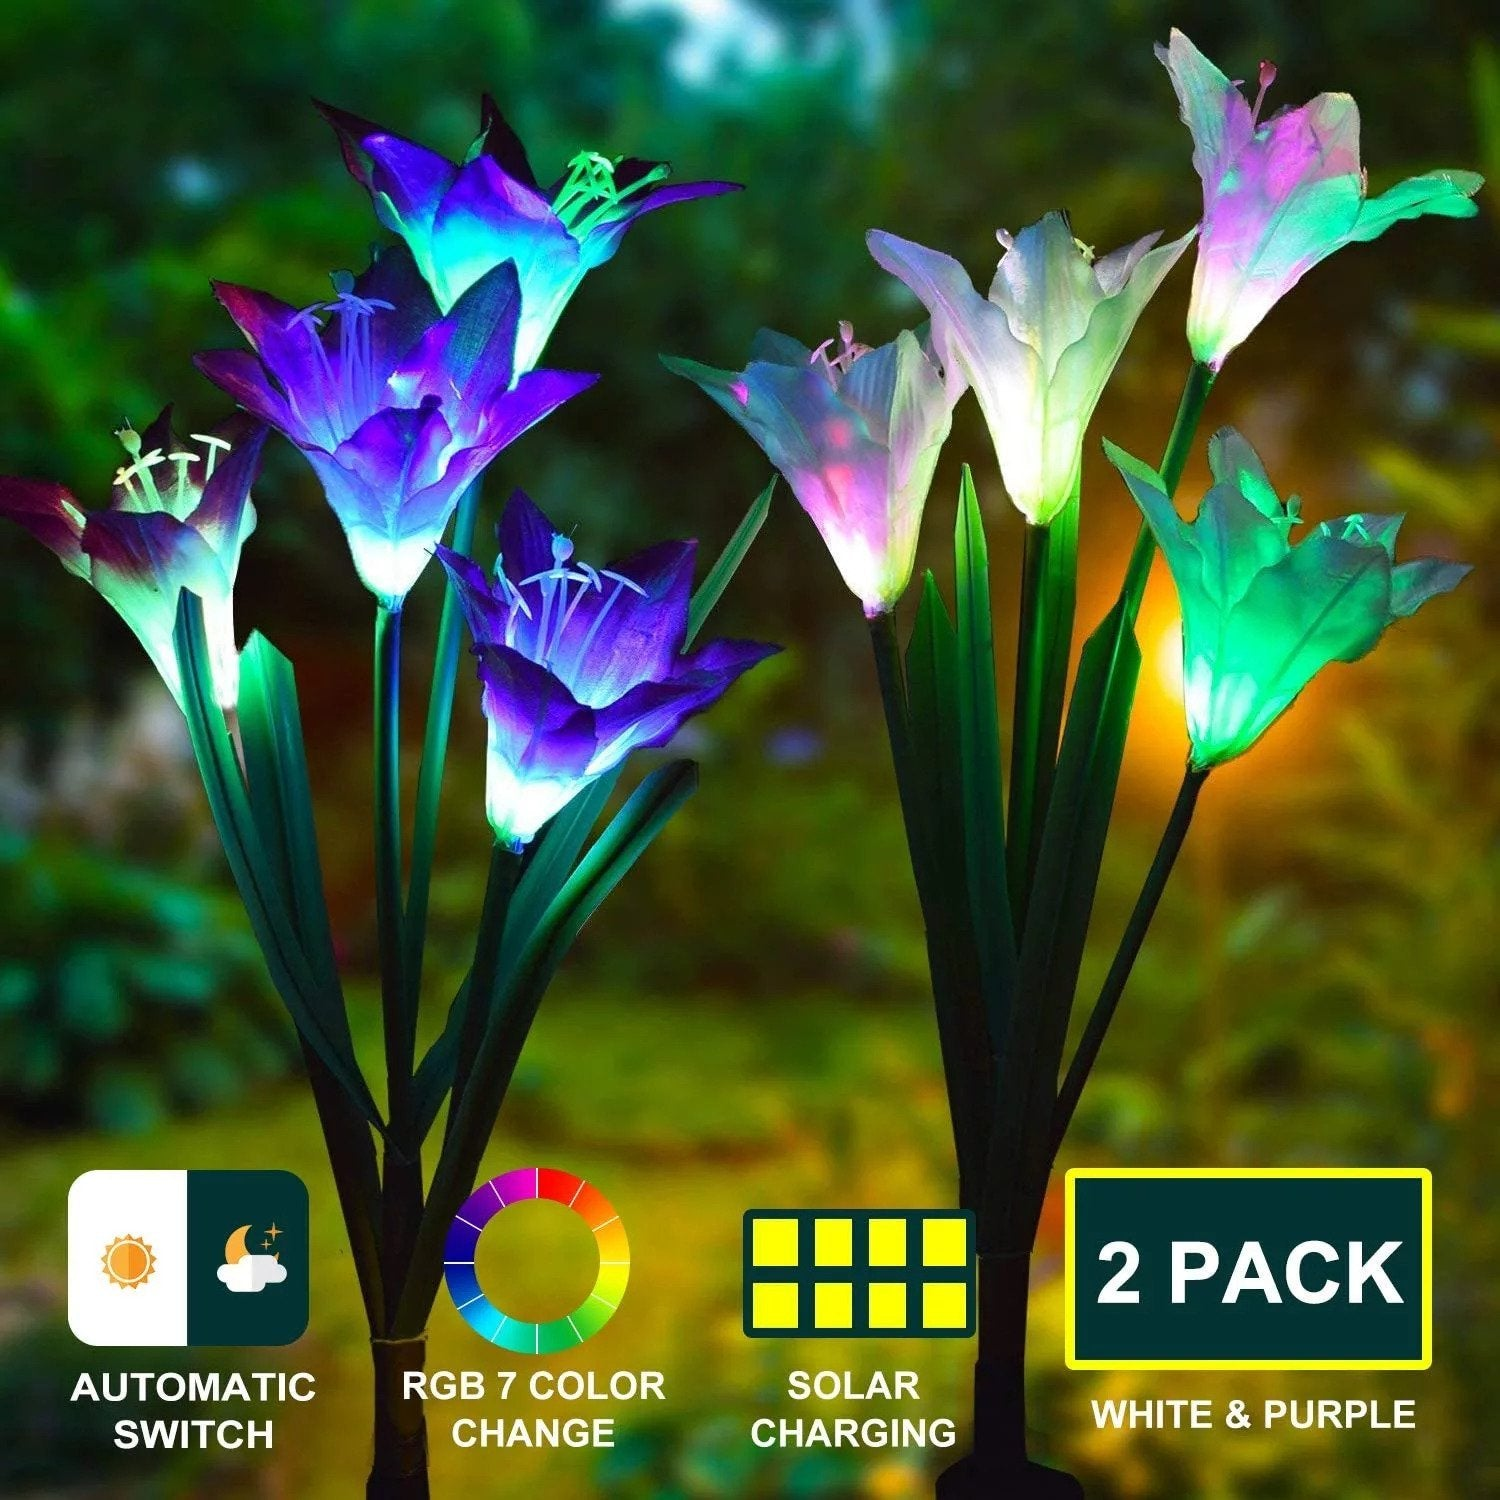 Solar Powered Lily Flower Light - 2 Pack Nebula Light